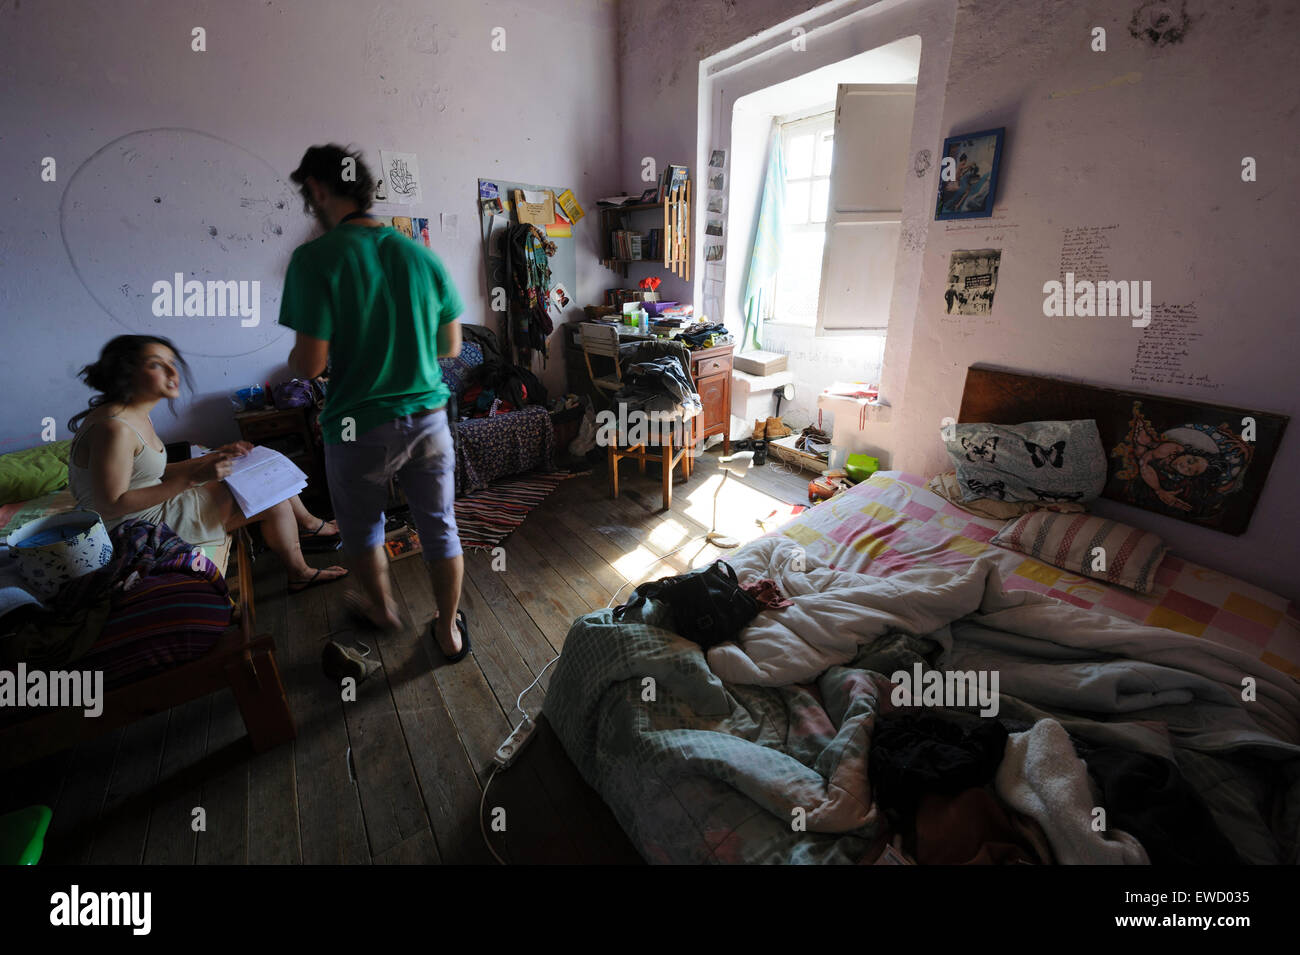 two teenagers in a messy bedroom stock photo 84493337 alamy rh alamy com